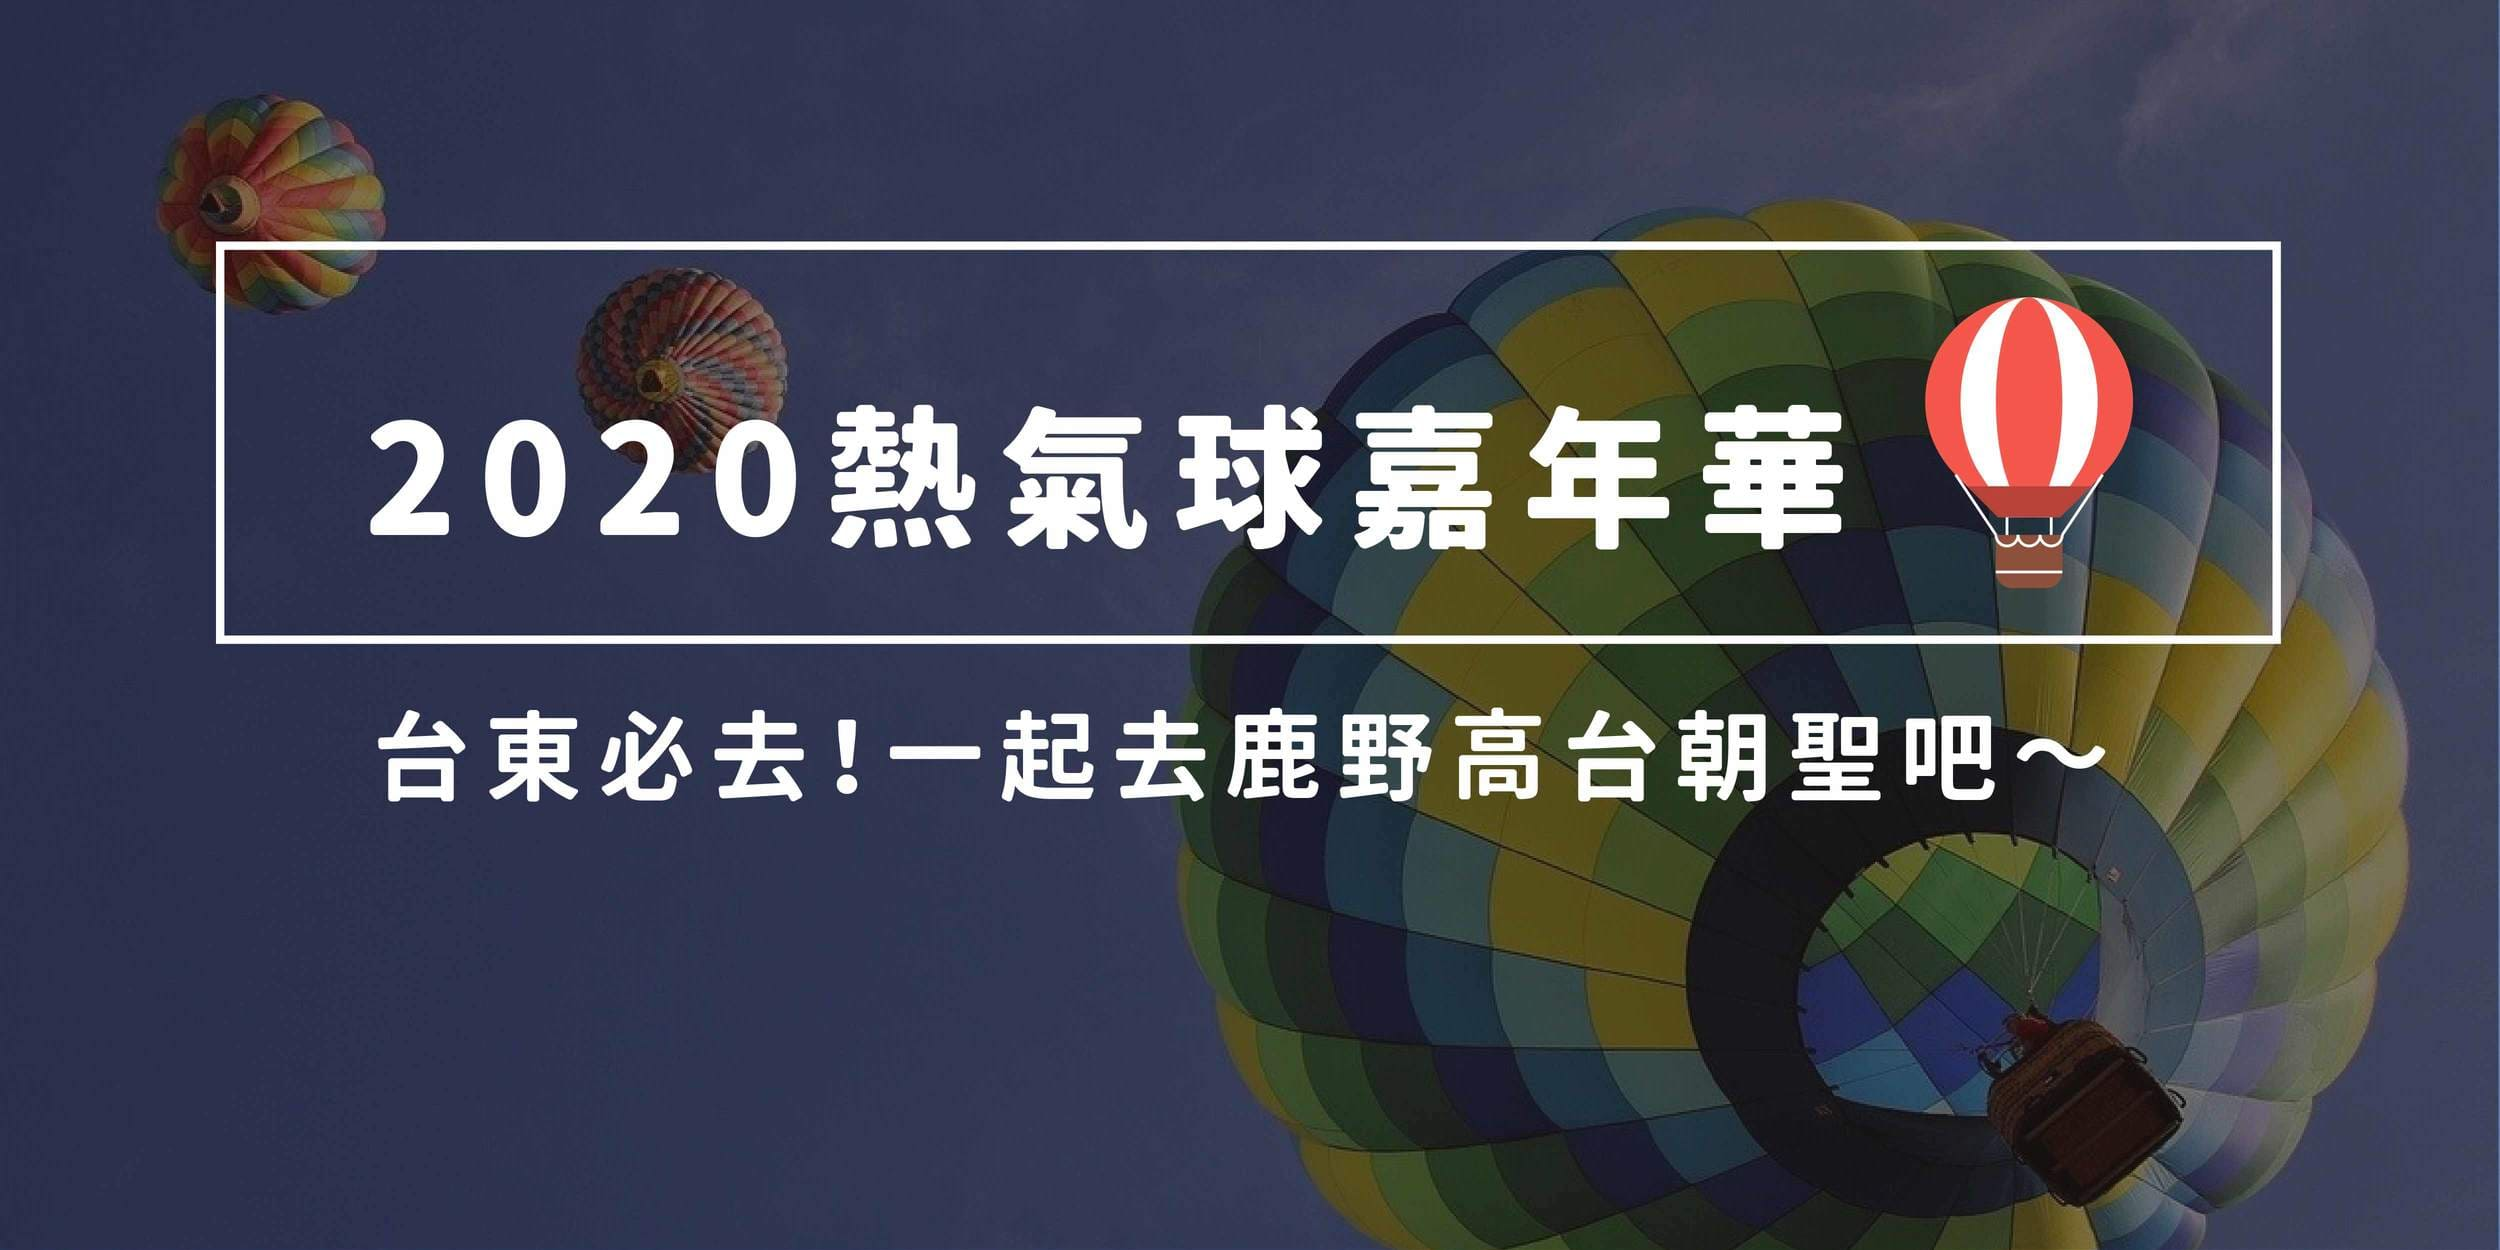 taitung-hot-air-balloon-cover